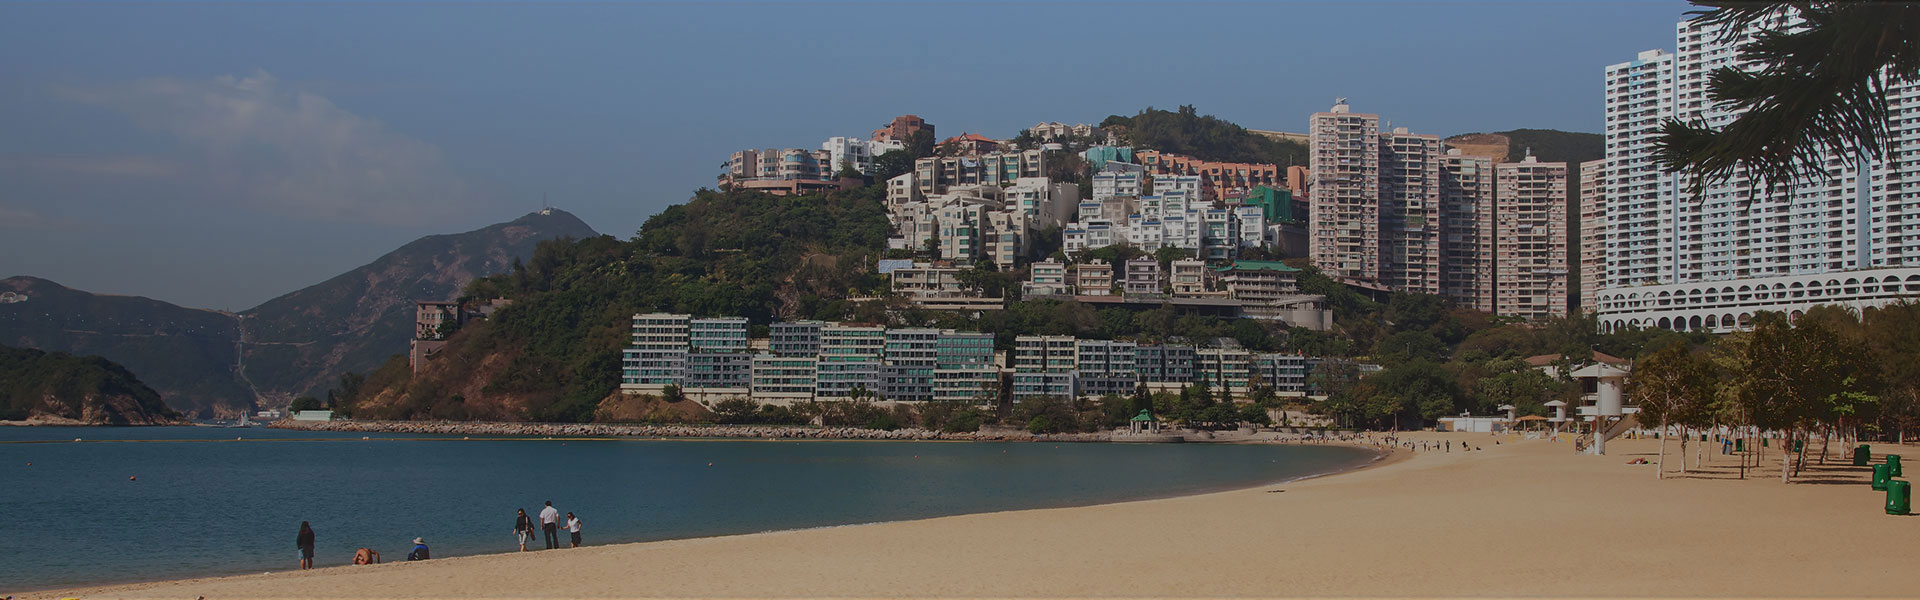 Beach at Repulse Bay in Hong Kong